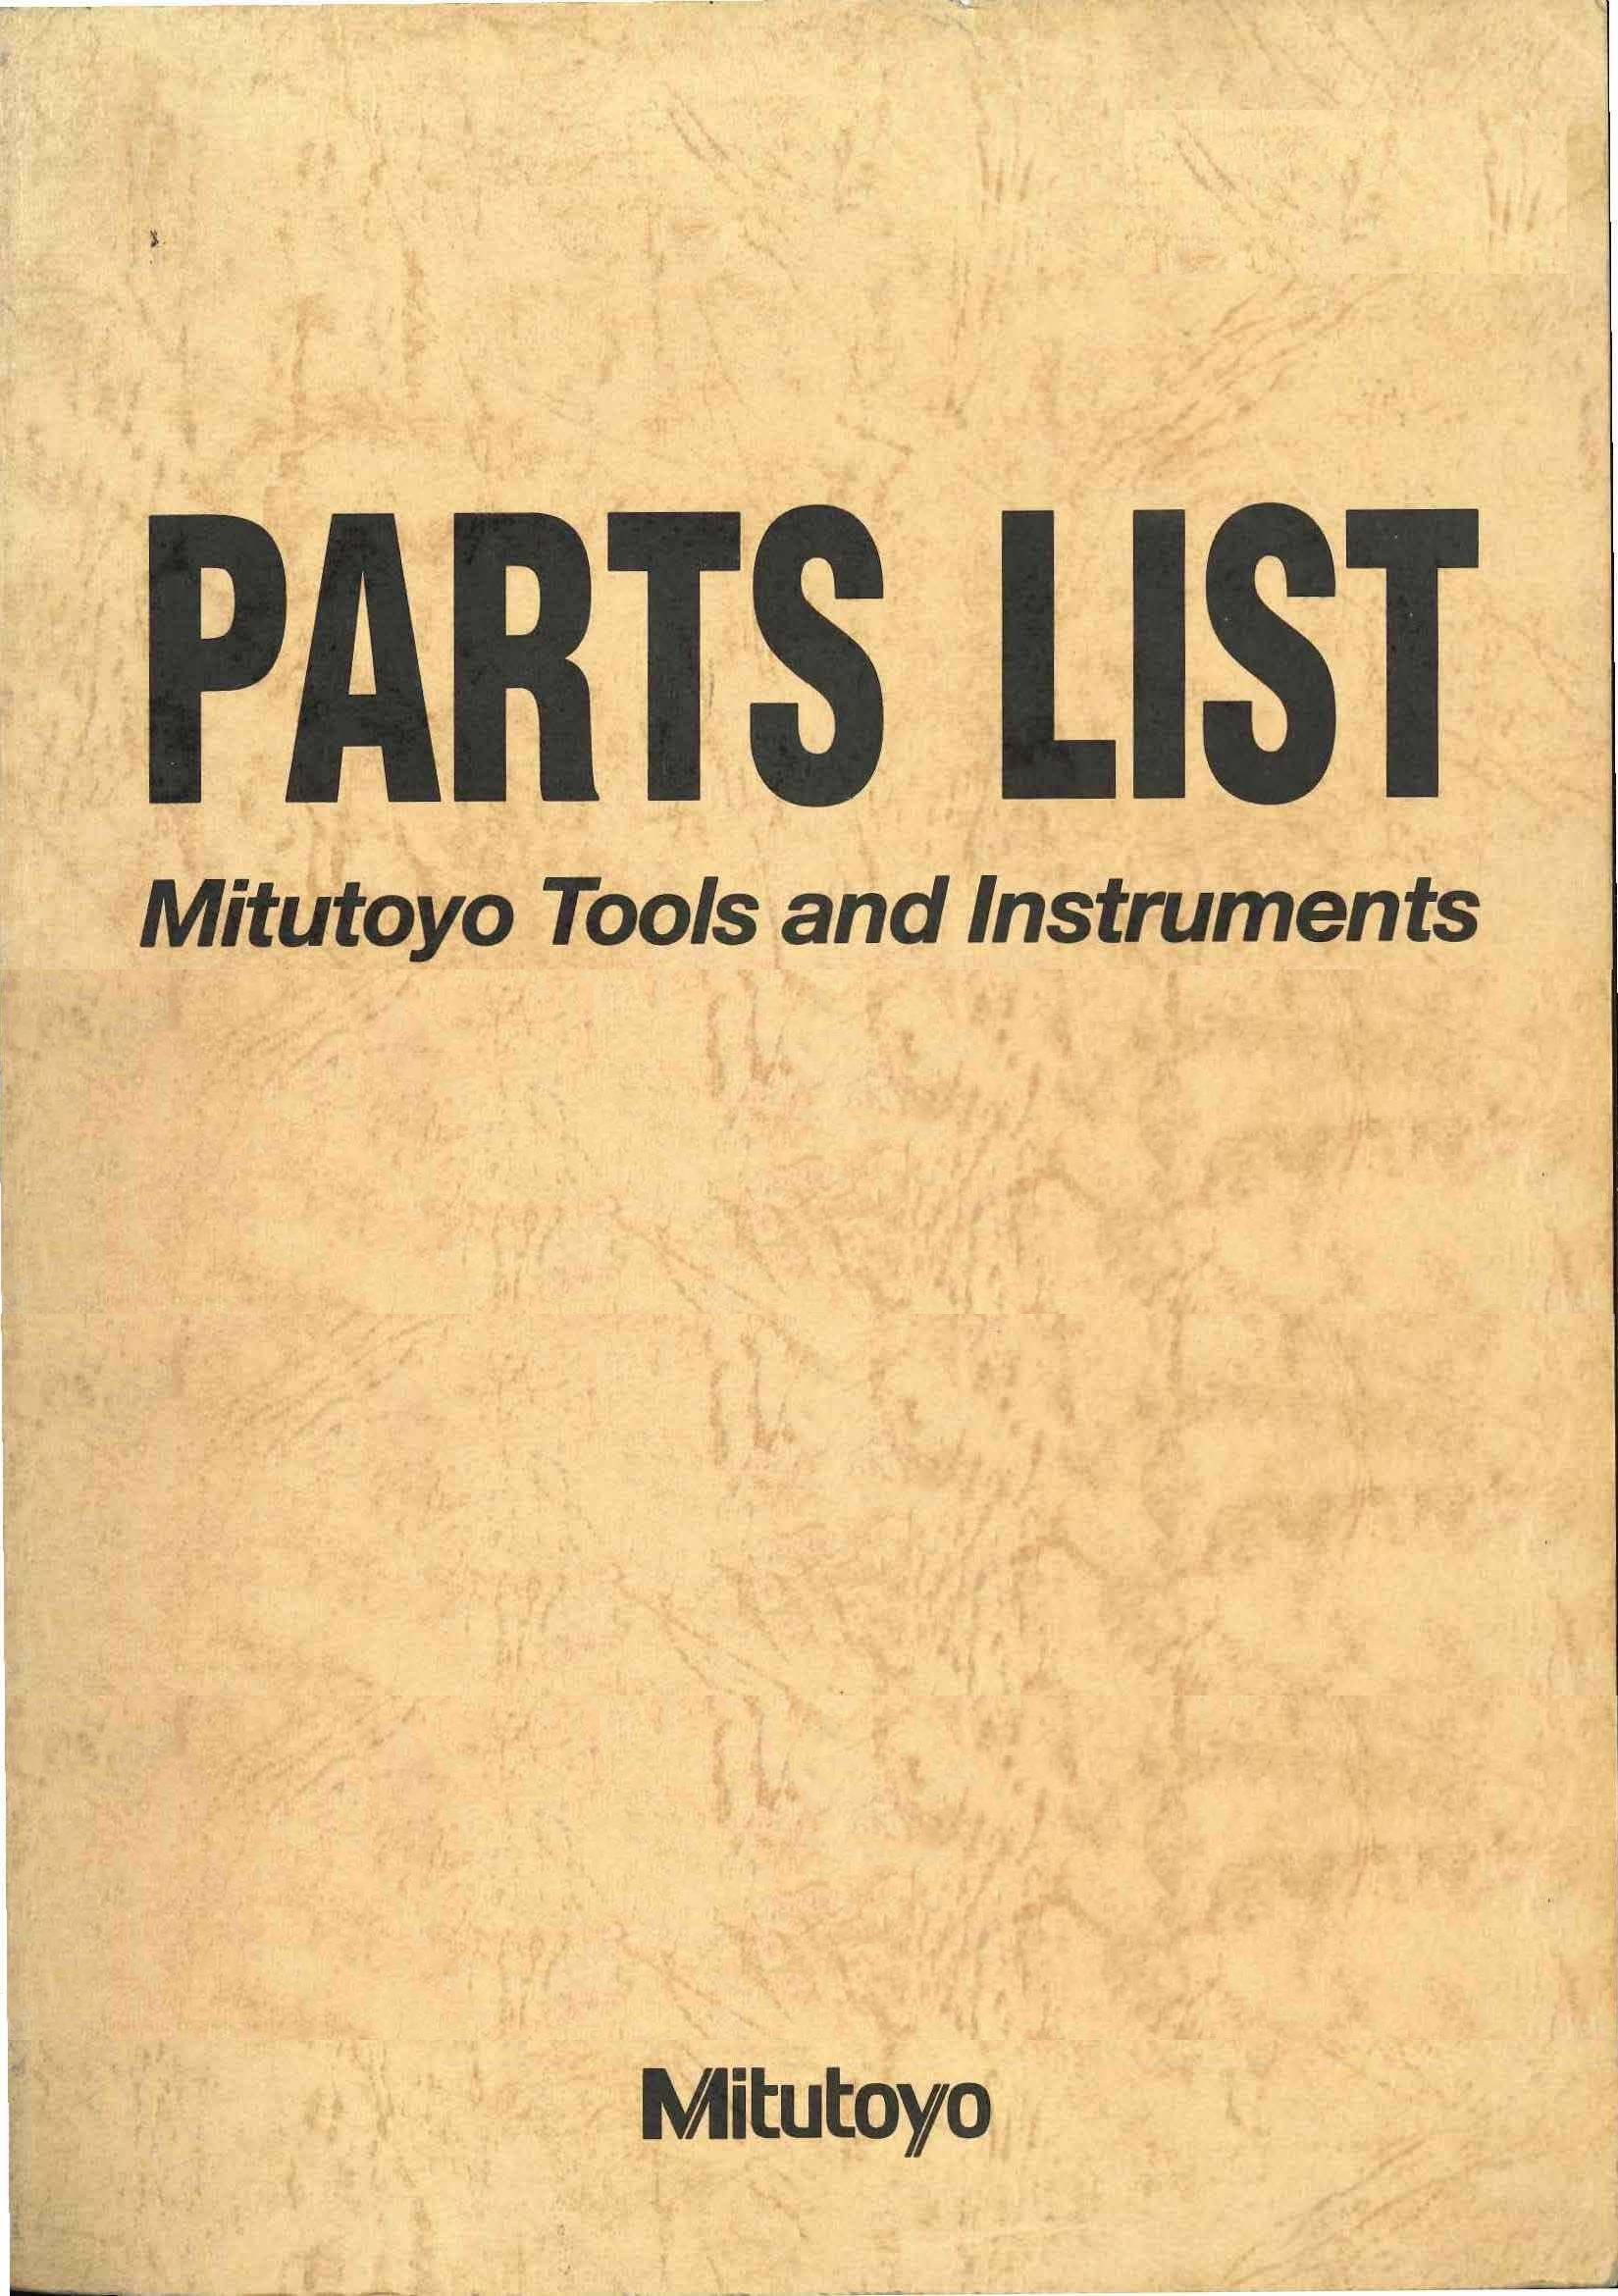 Part_list_cover2.jpg